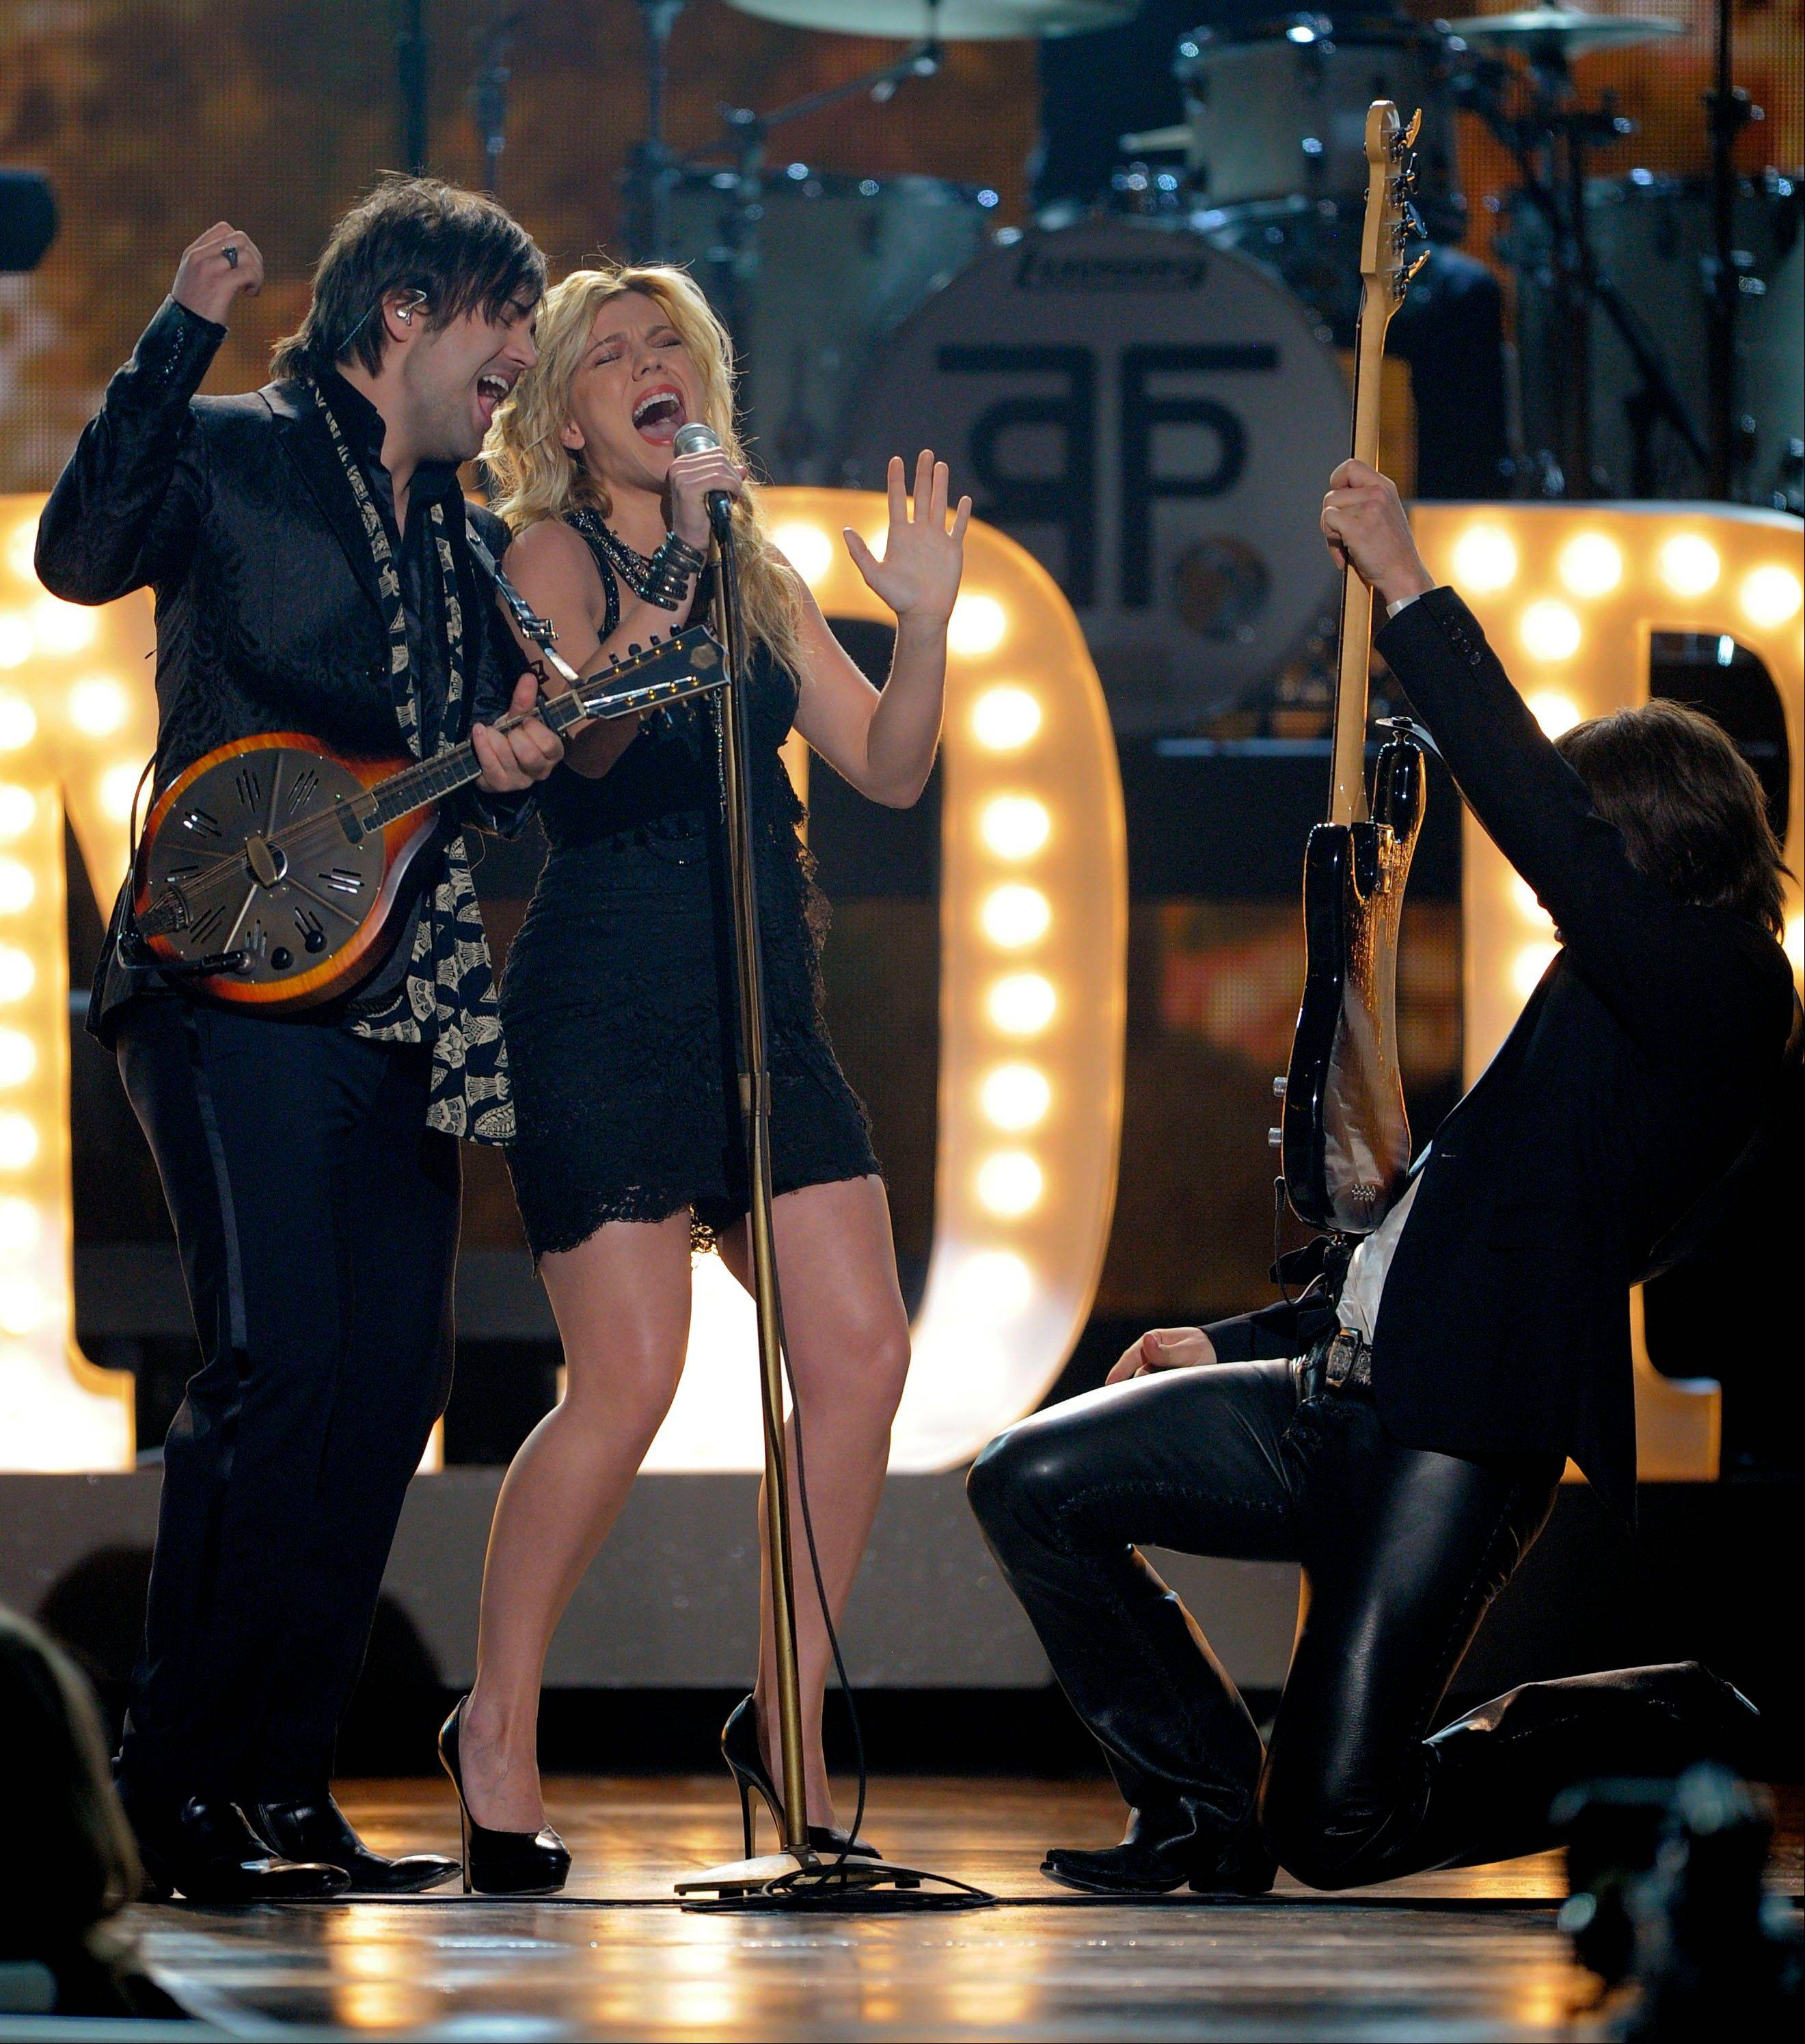 From left, Neil Perry, Kimberly Perry and Reid Perry, of musical group The Band Perry, perform at the 47th Annual Academy of Country Music Awards.